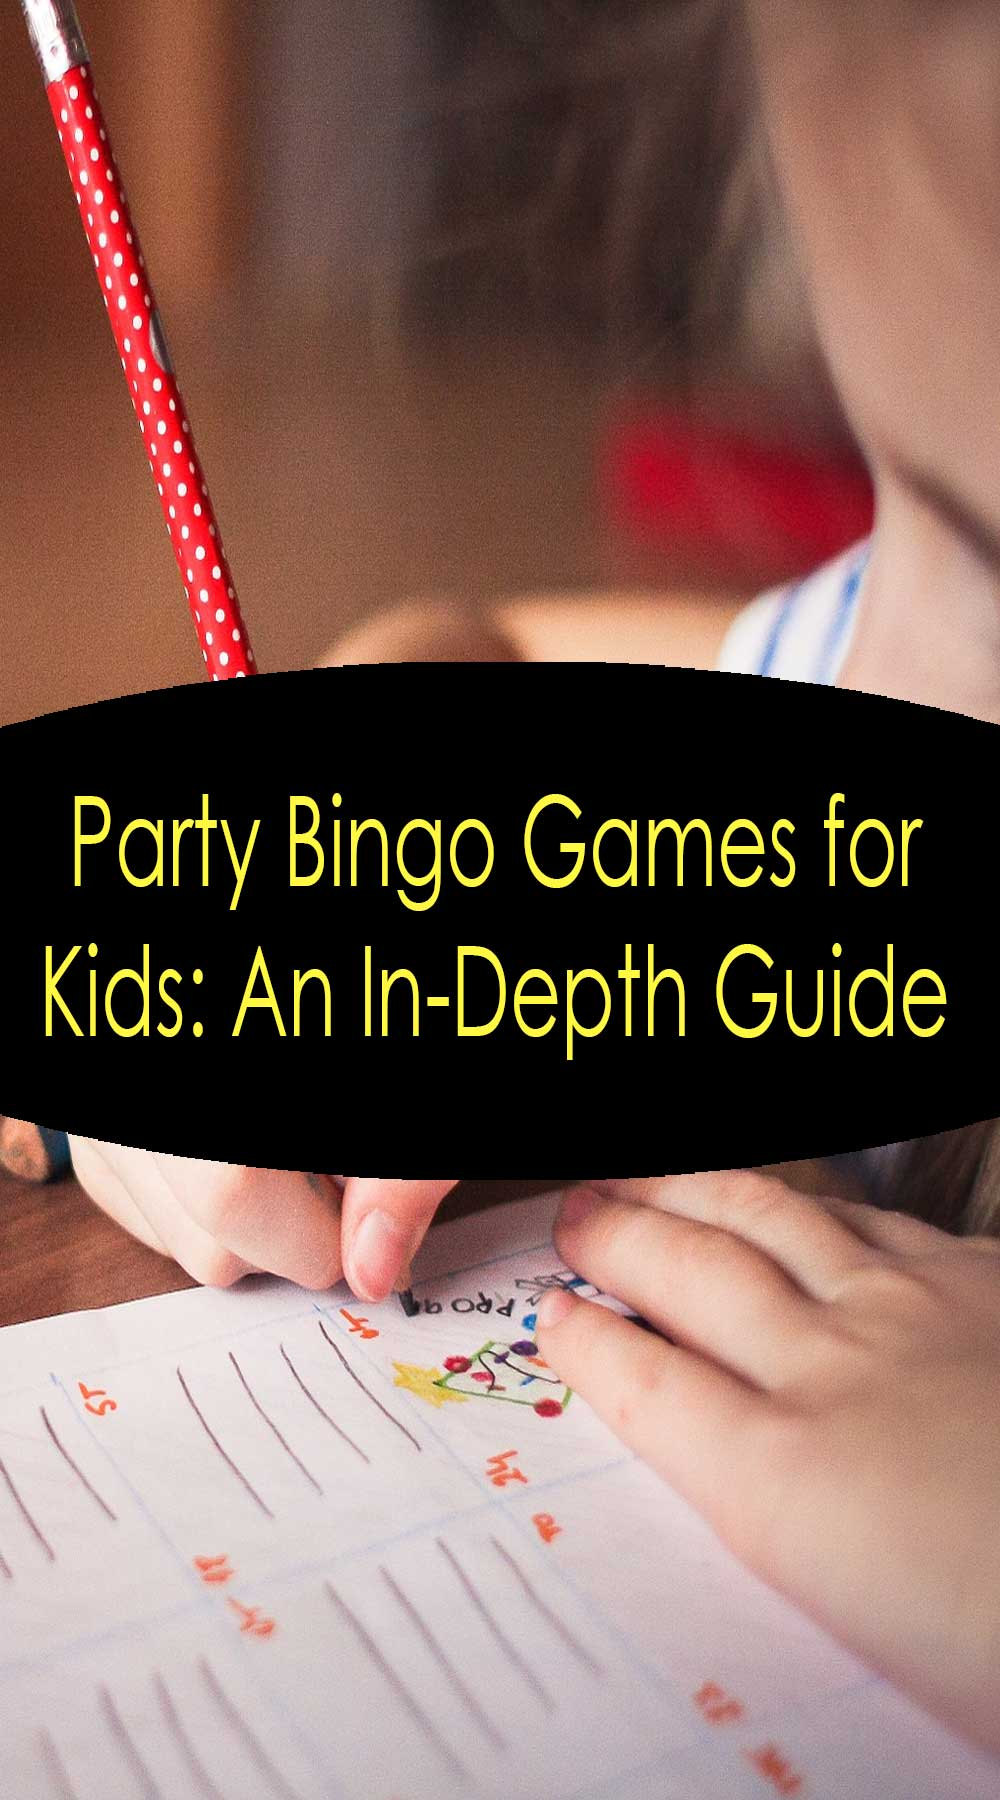 Party Bingo Games for Kids: An In-Depth Guide